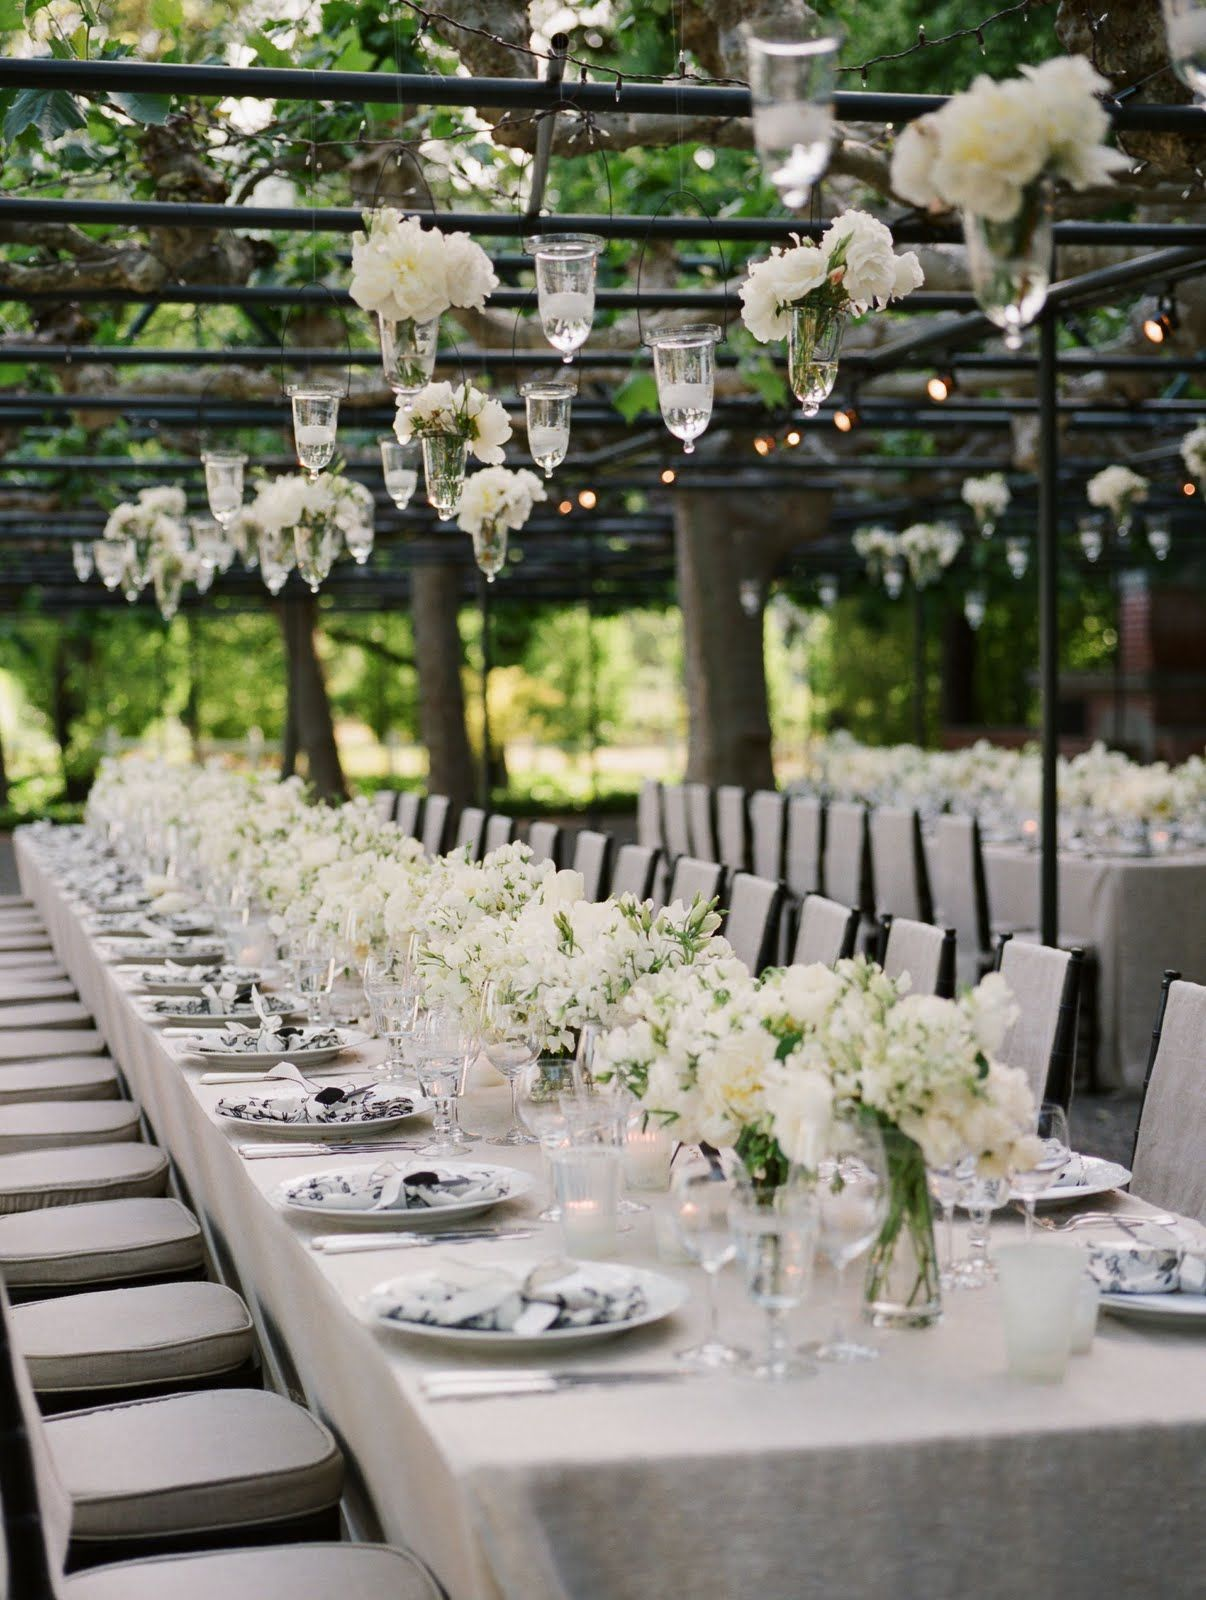 Garden wedding decorations night  Having your dinner under a structure like this is perfect drape the